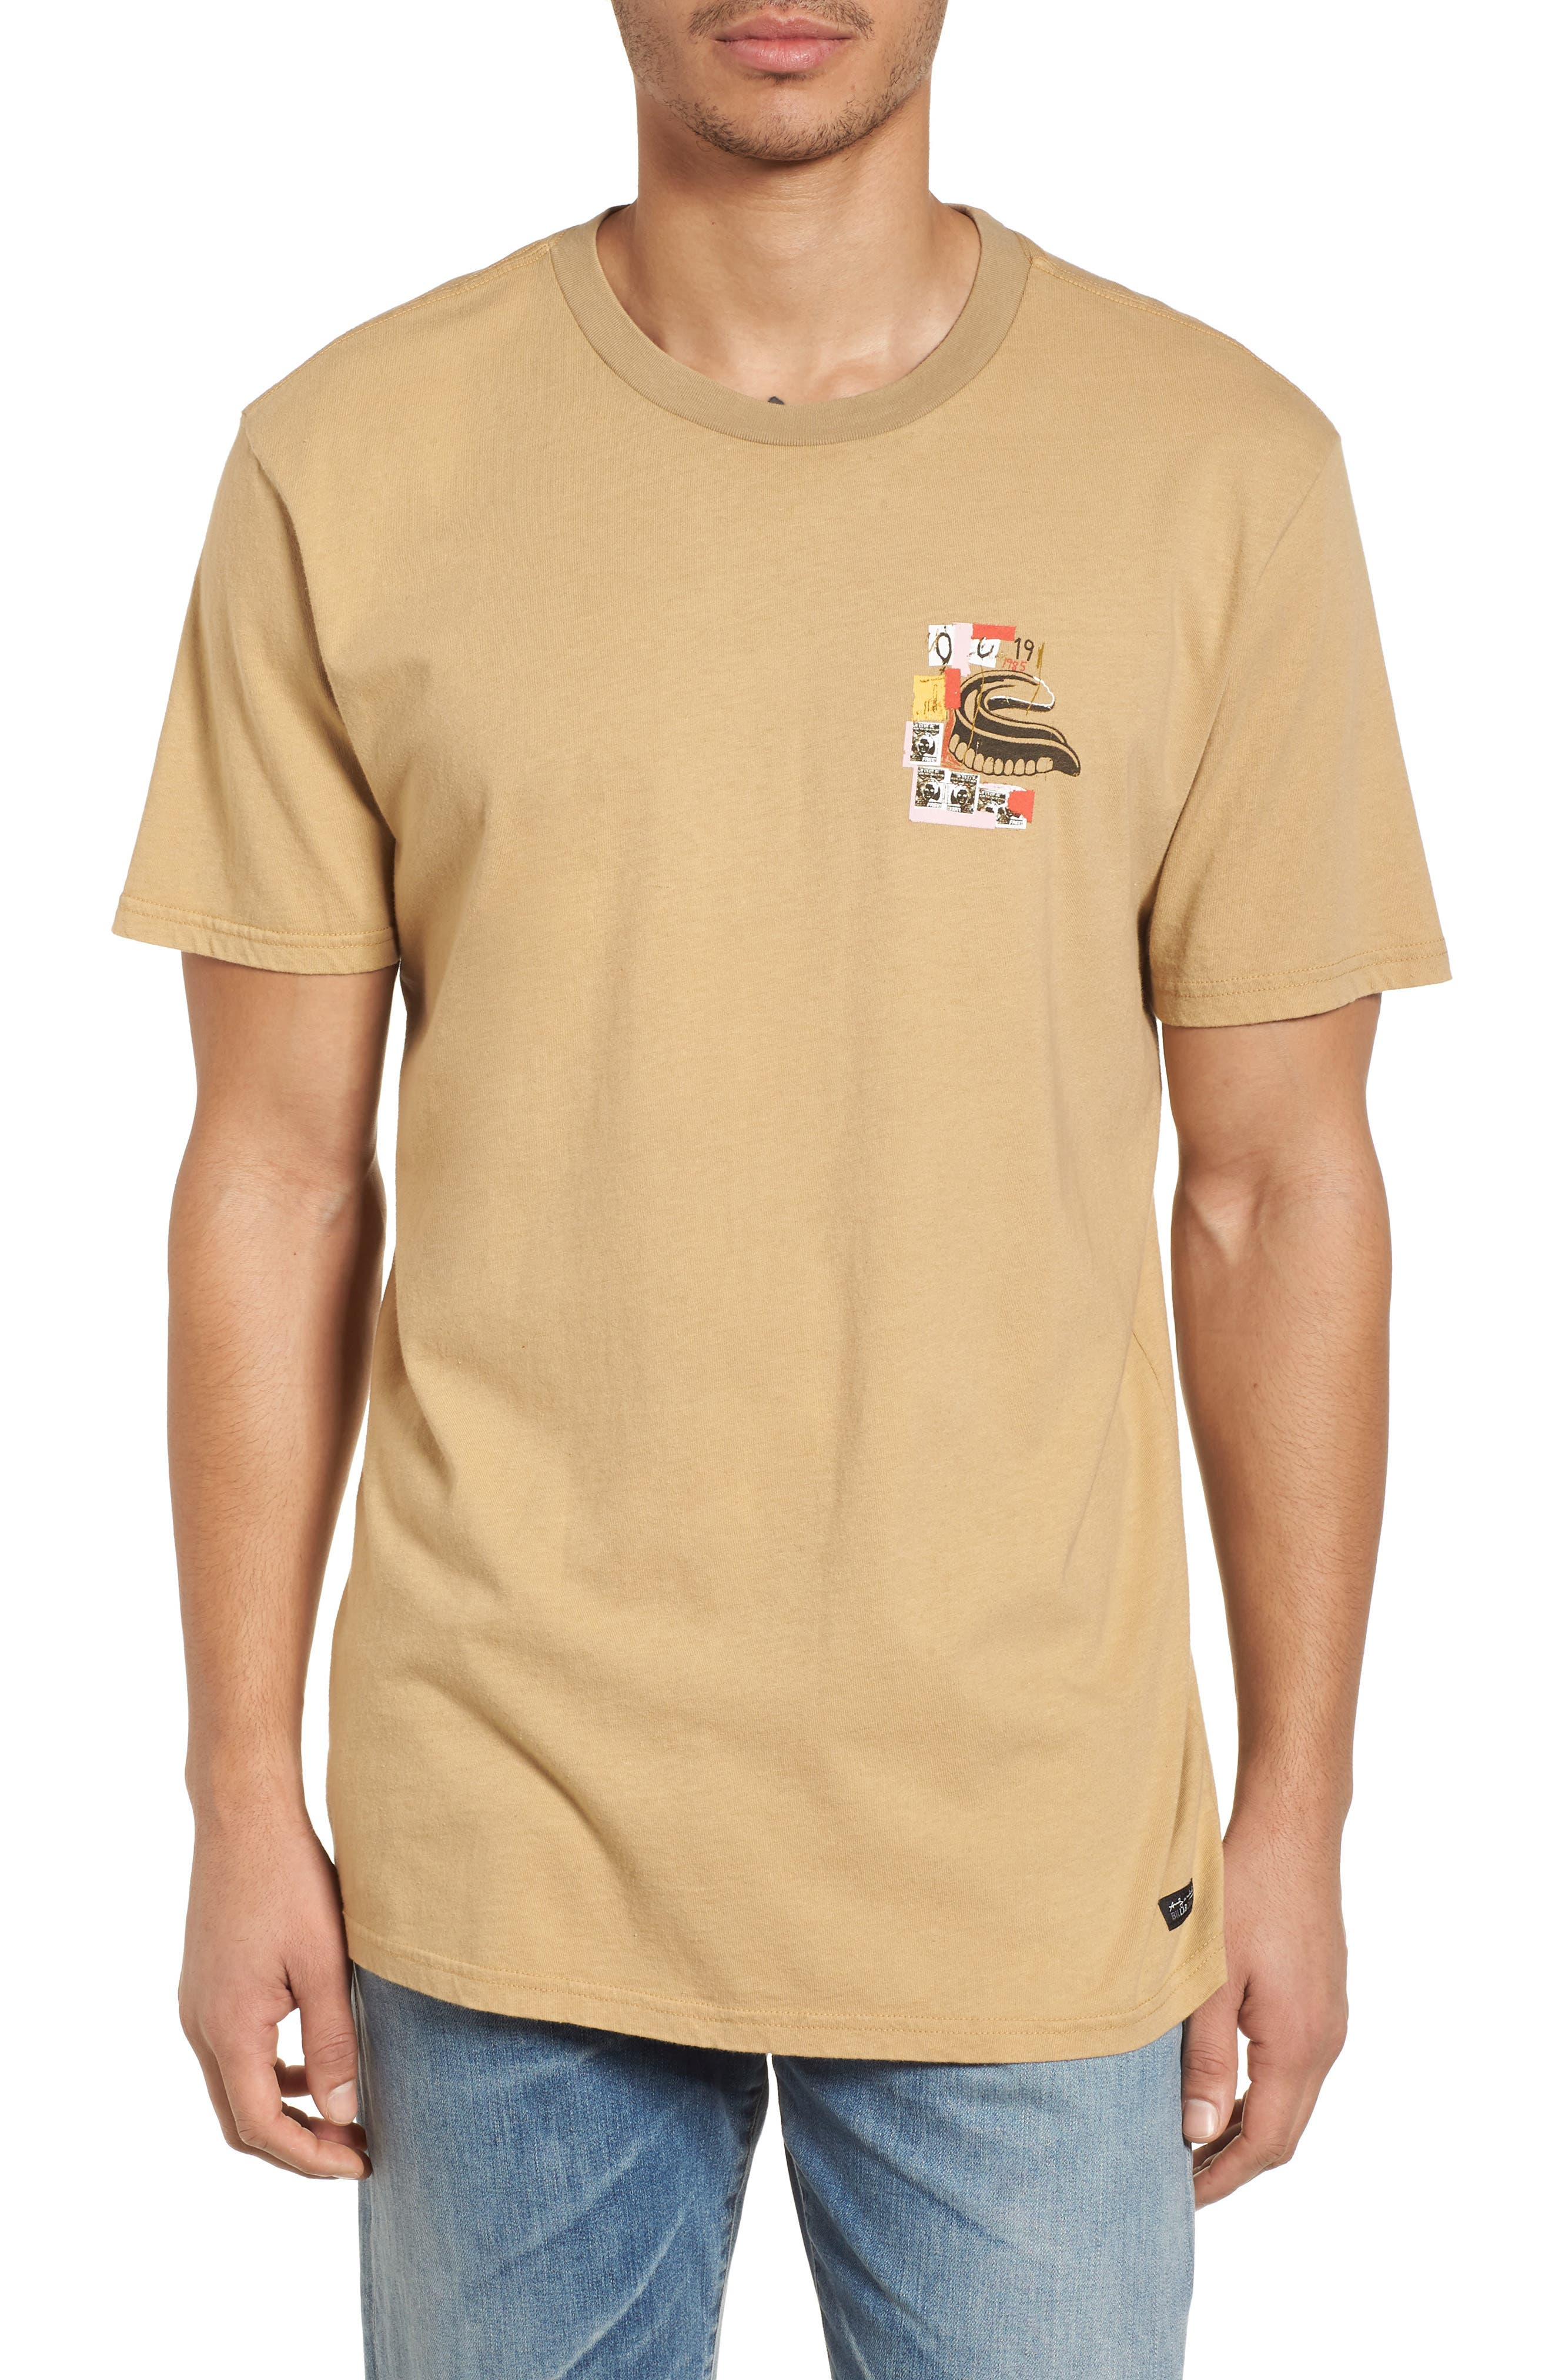 x Warhol Eighty Graphic T-Shirt,                         Main,                         color, Straw